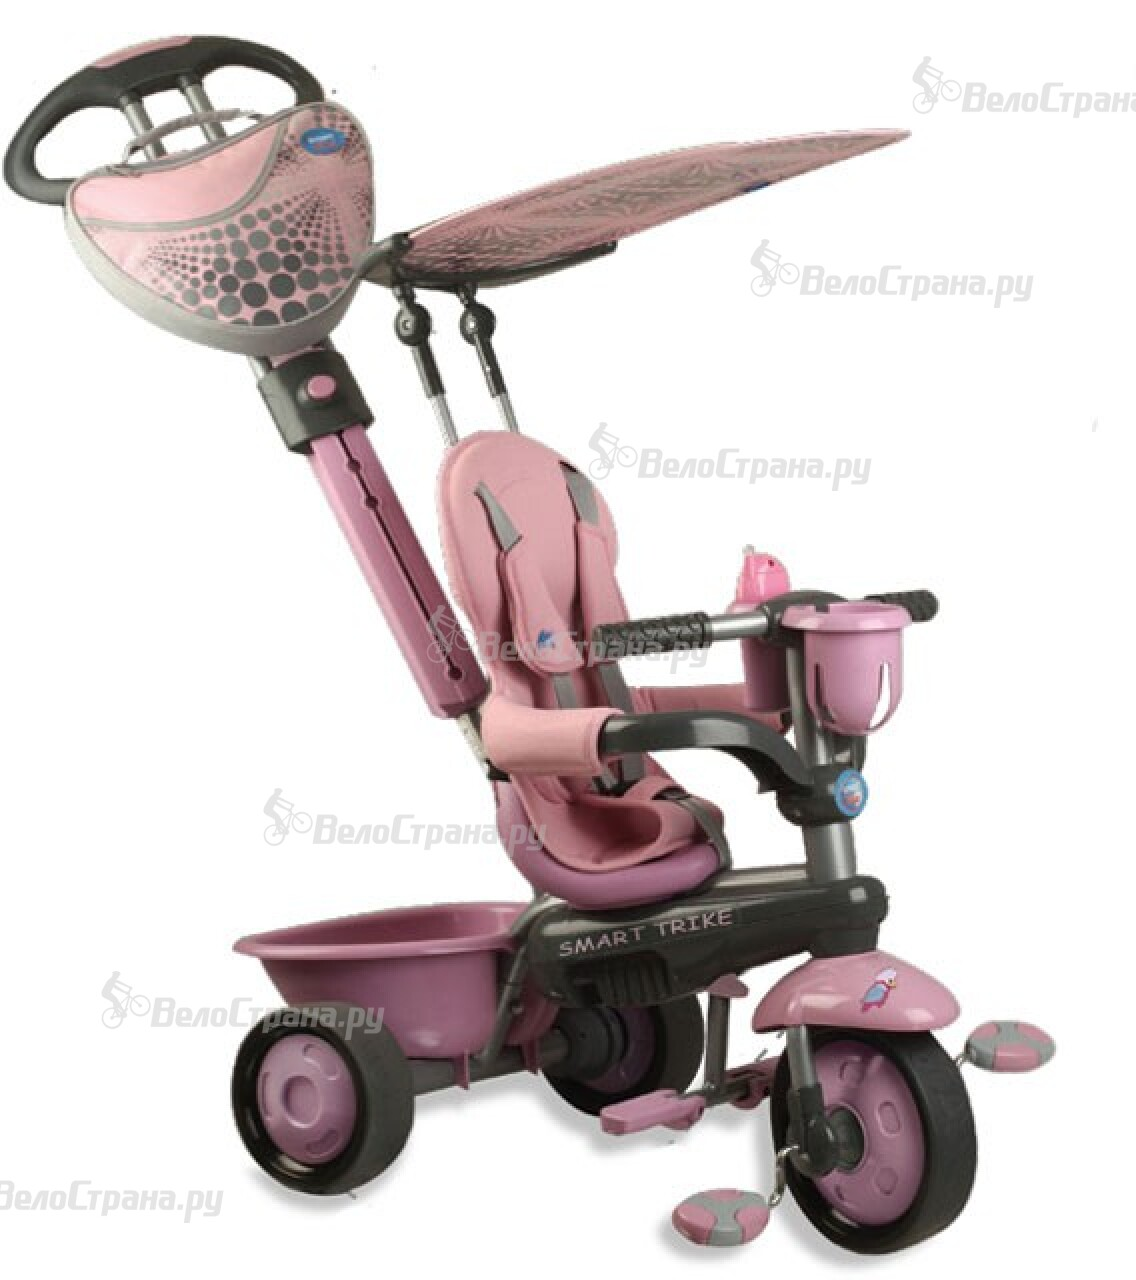 Велосипед Smart-Trike Zoo (2014) велосипед для малыша smart trike 1573900 zoo collection blue